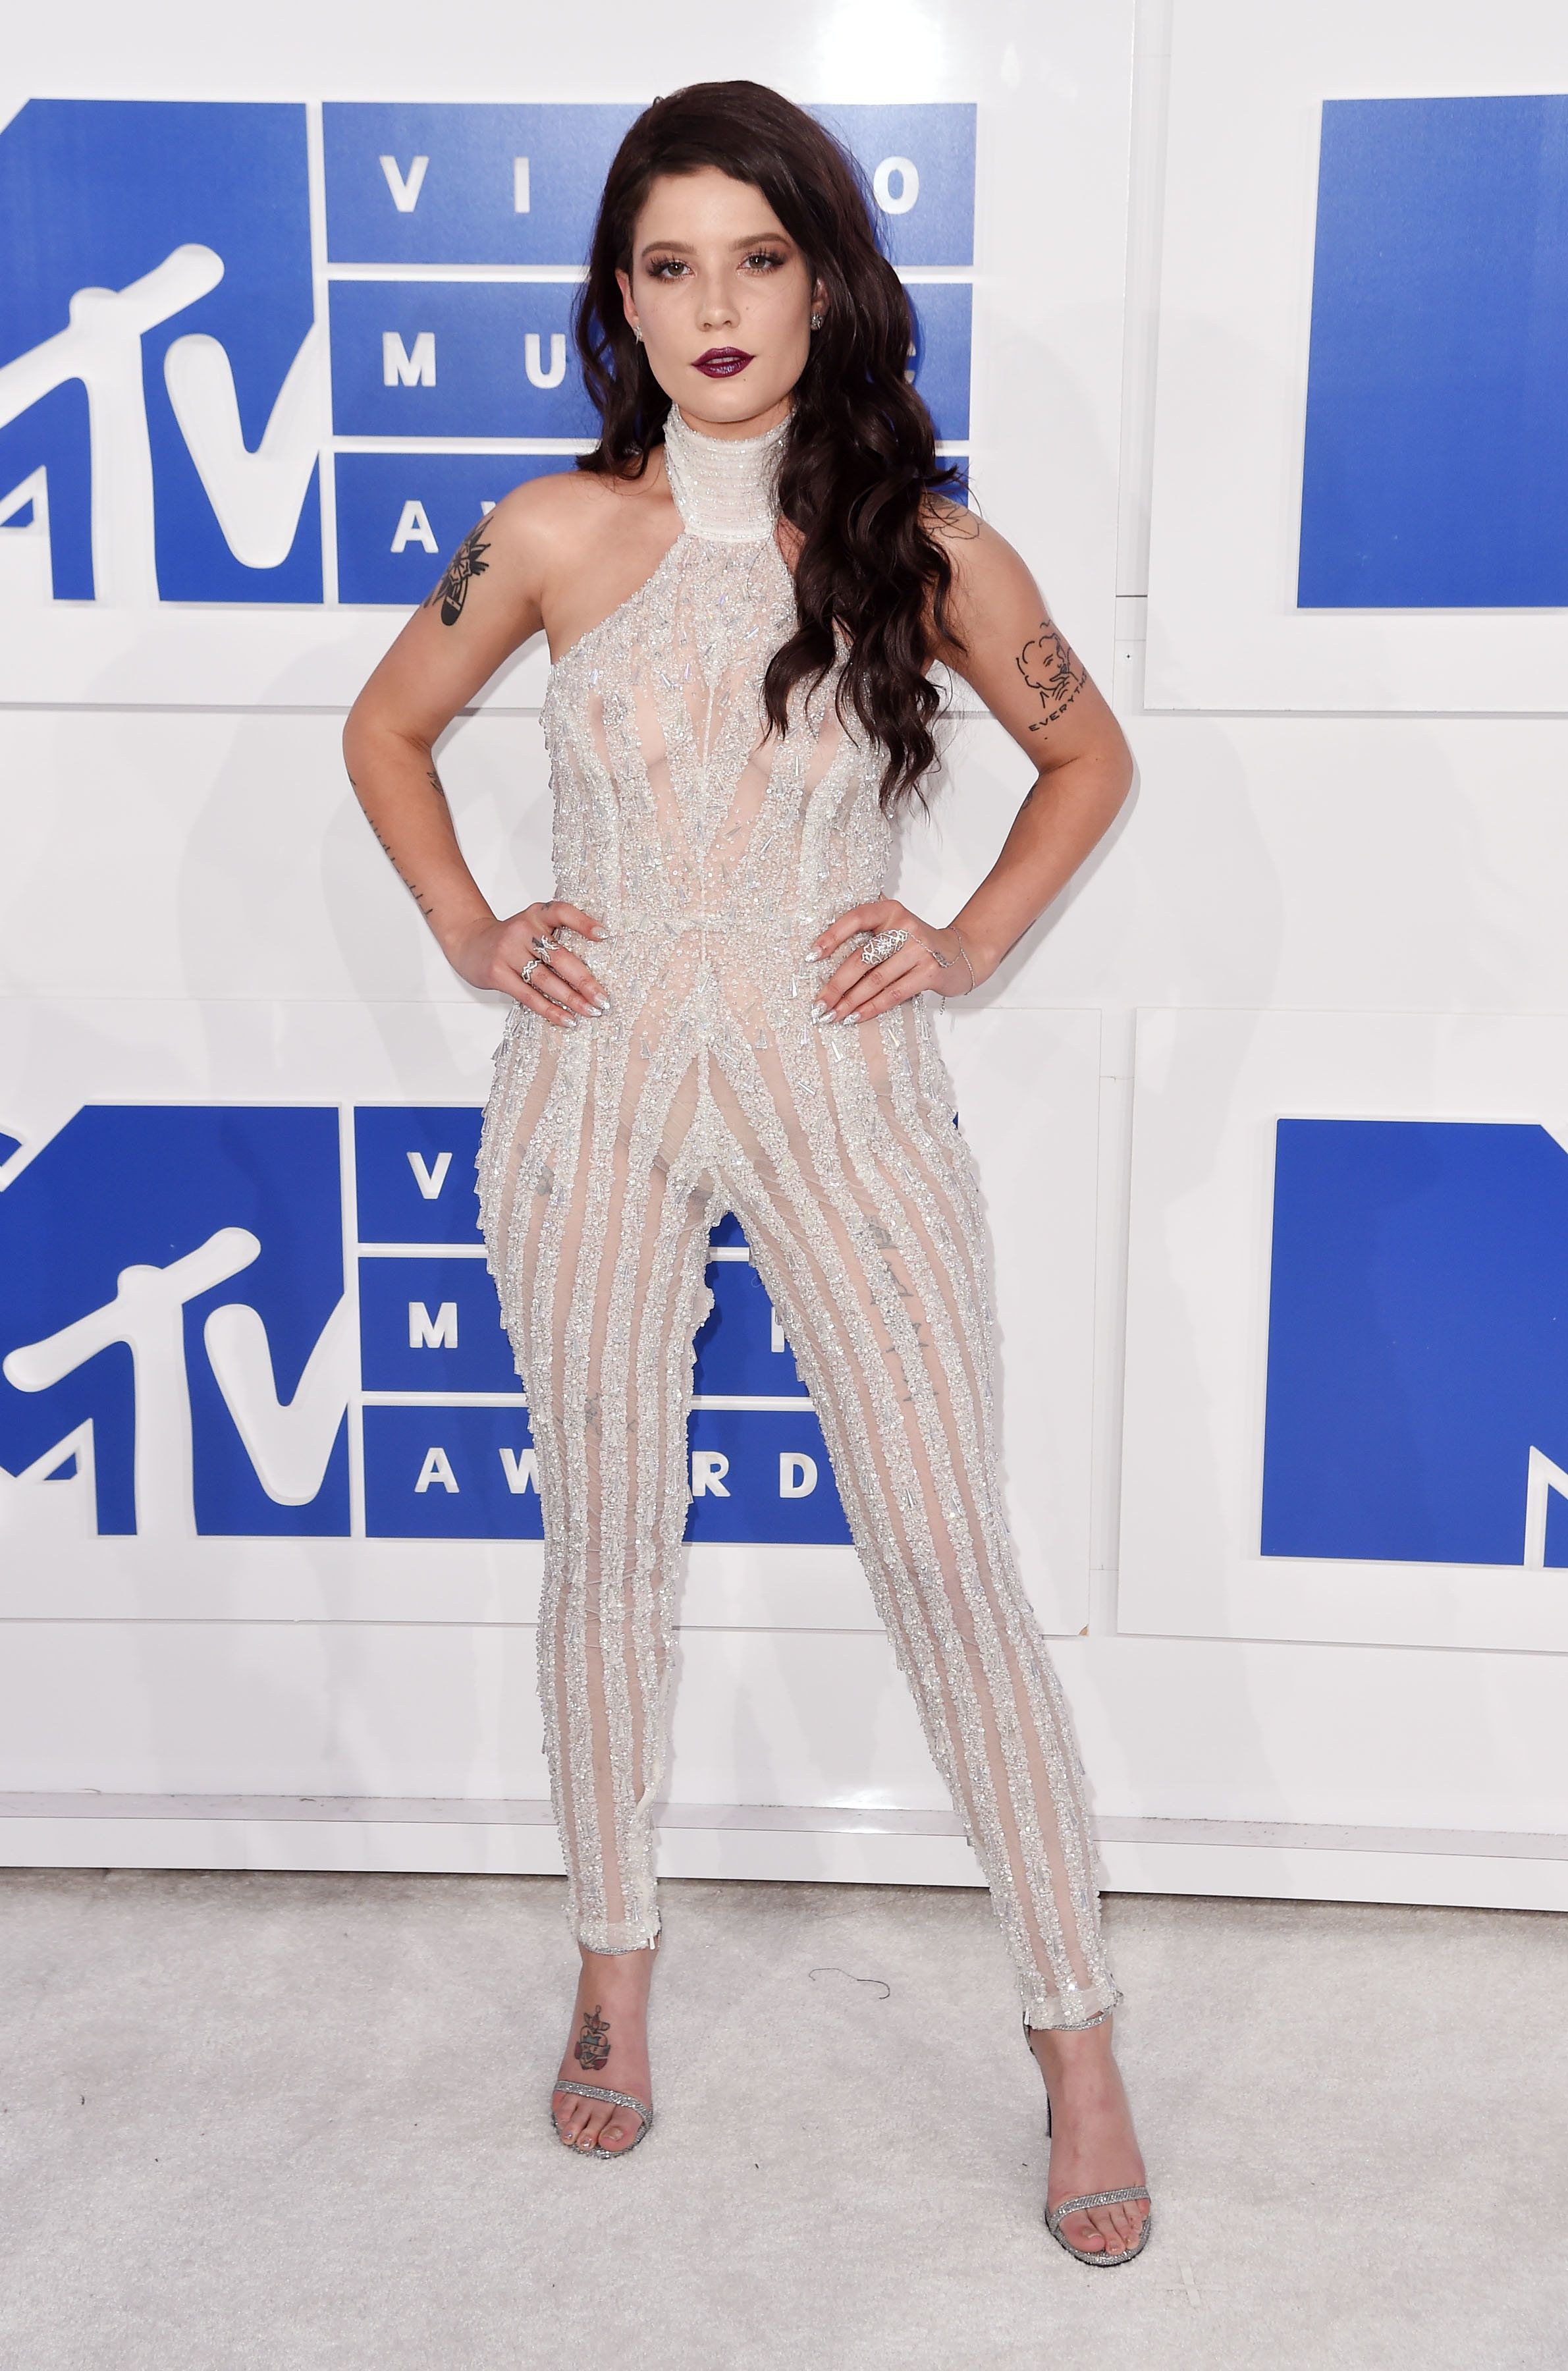 Wearing a sparkly catsuit at the MTV Video Music Awards on Aug. 28 in New York City.